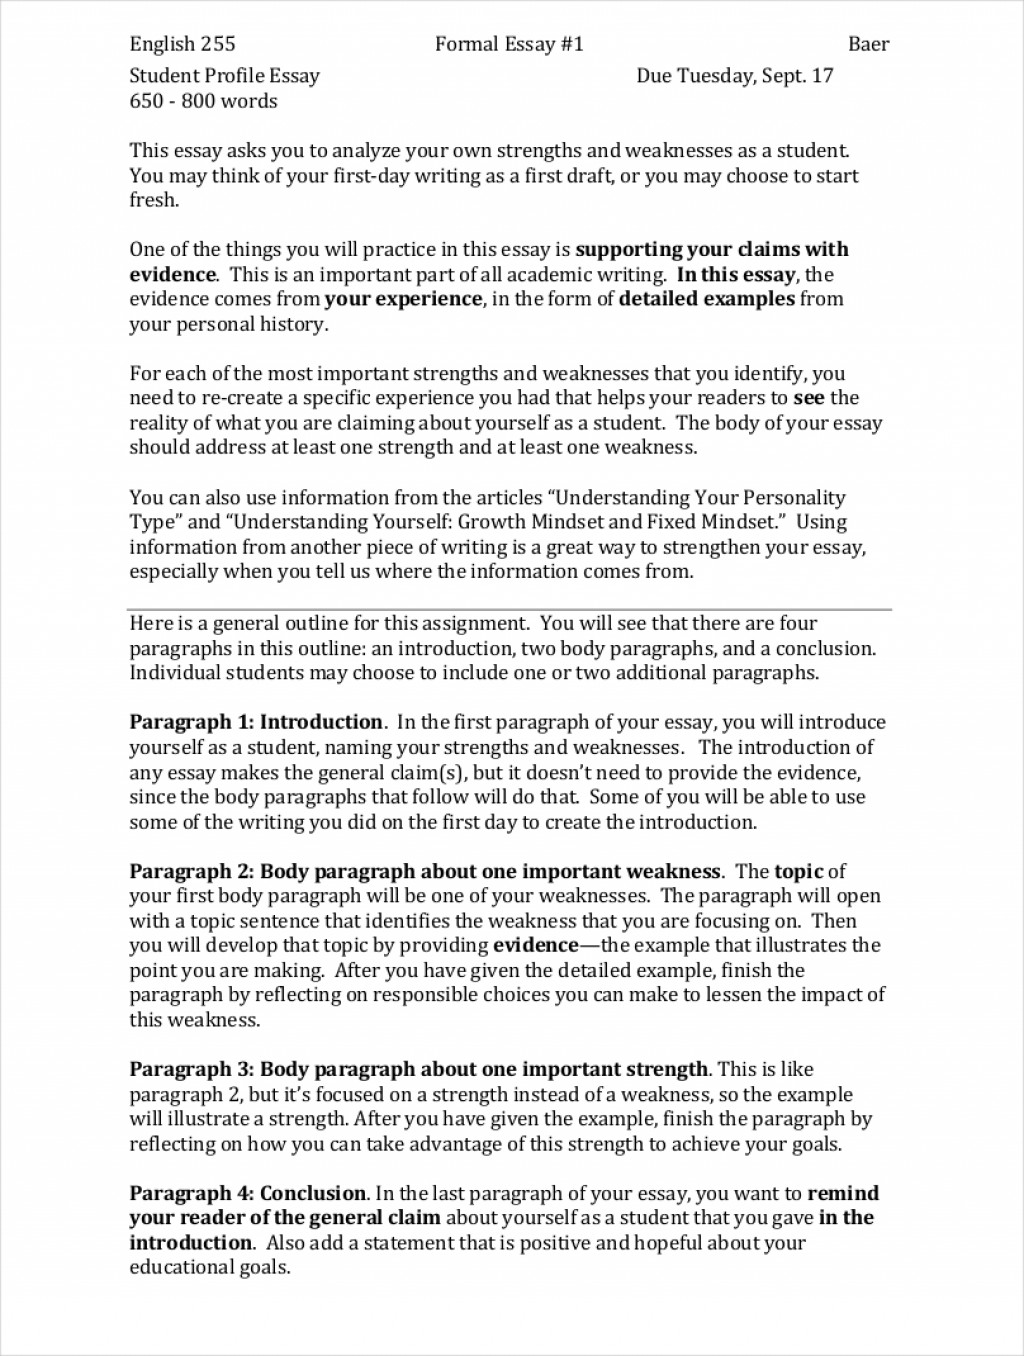 024 Examples Of Profile Essays Samples Formal Free Pdf Format Download Student Essay Sa For This Writing Assignment Your Opening Paragraph Needs To Include The Following Marvelous College Community Company Large